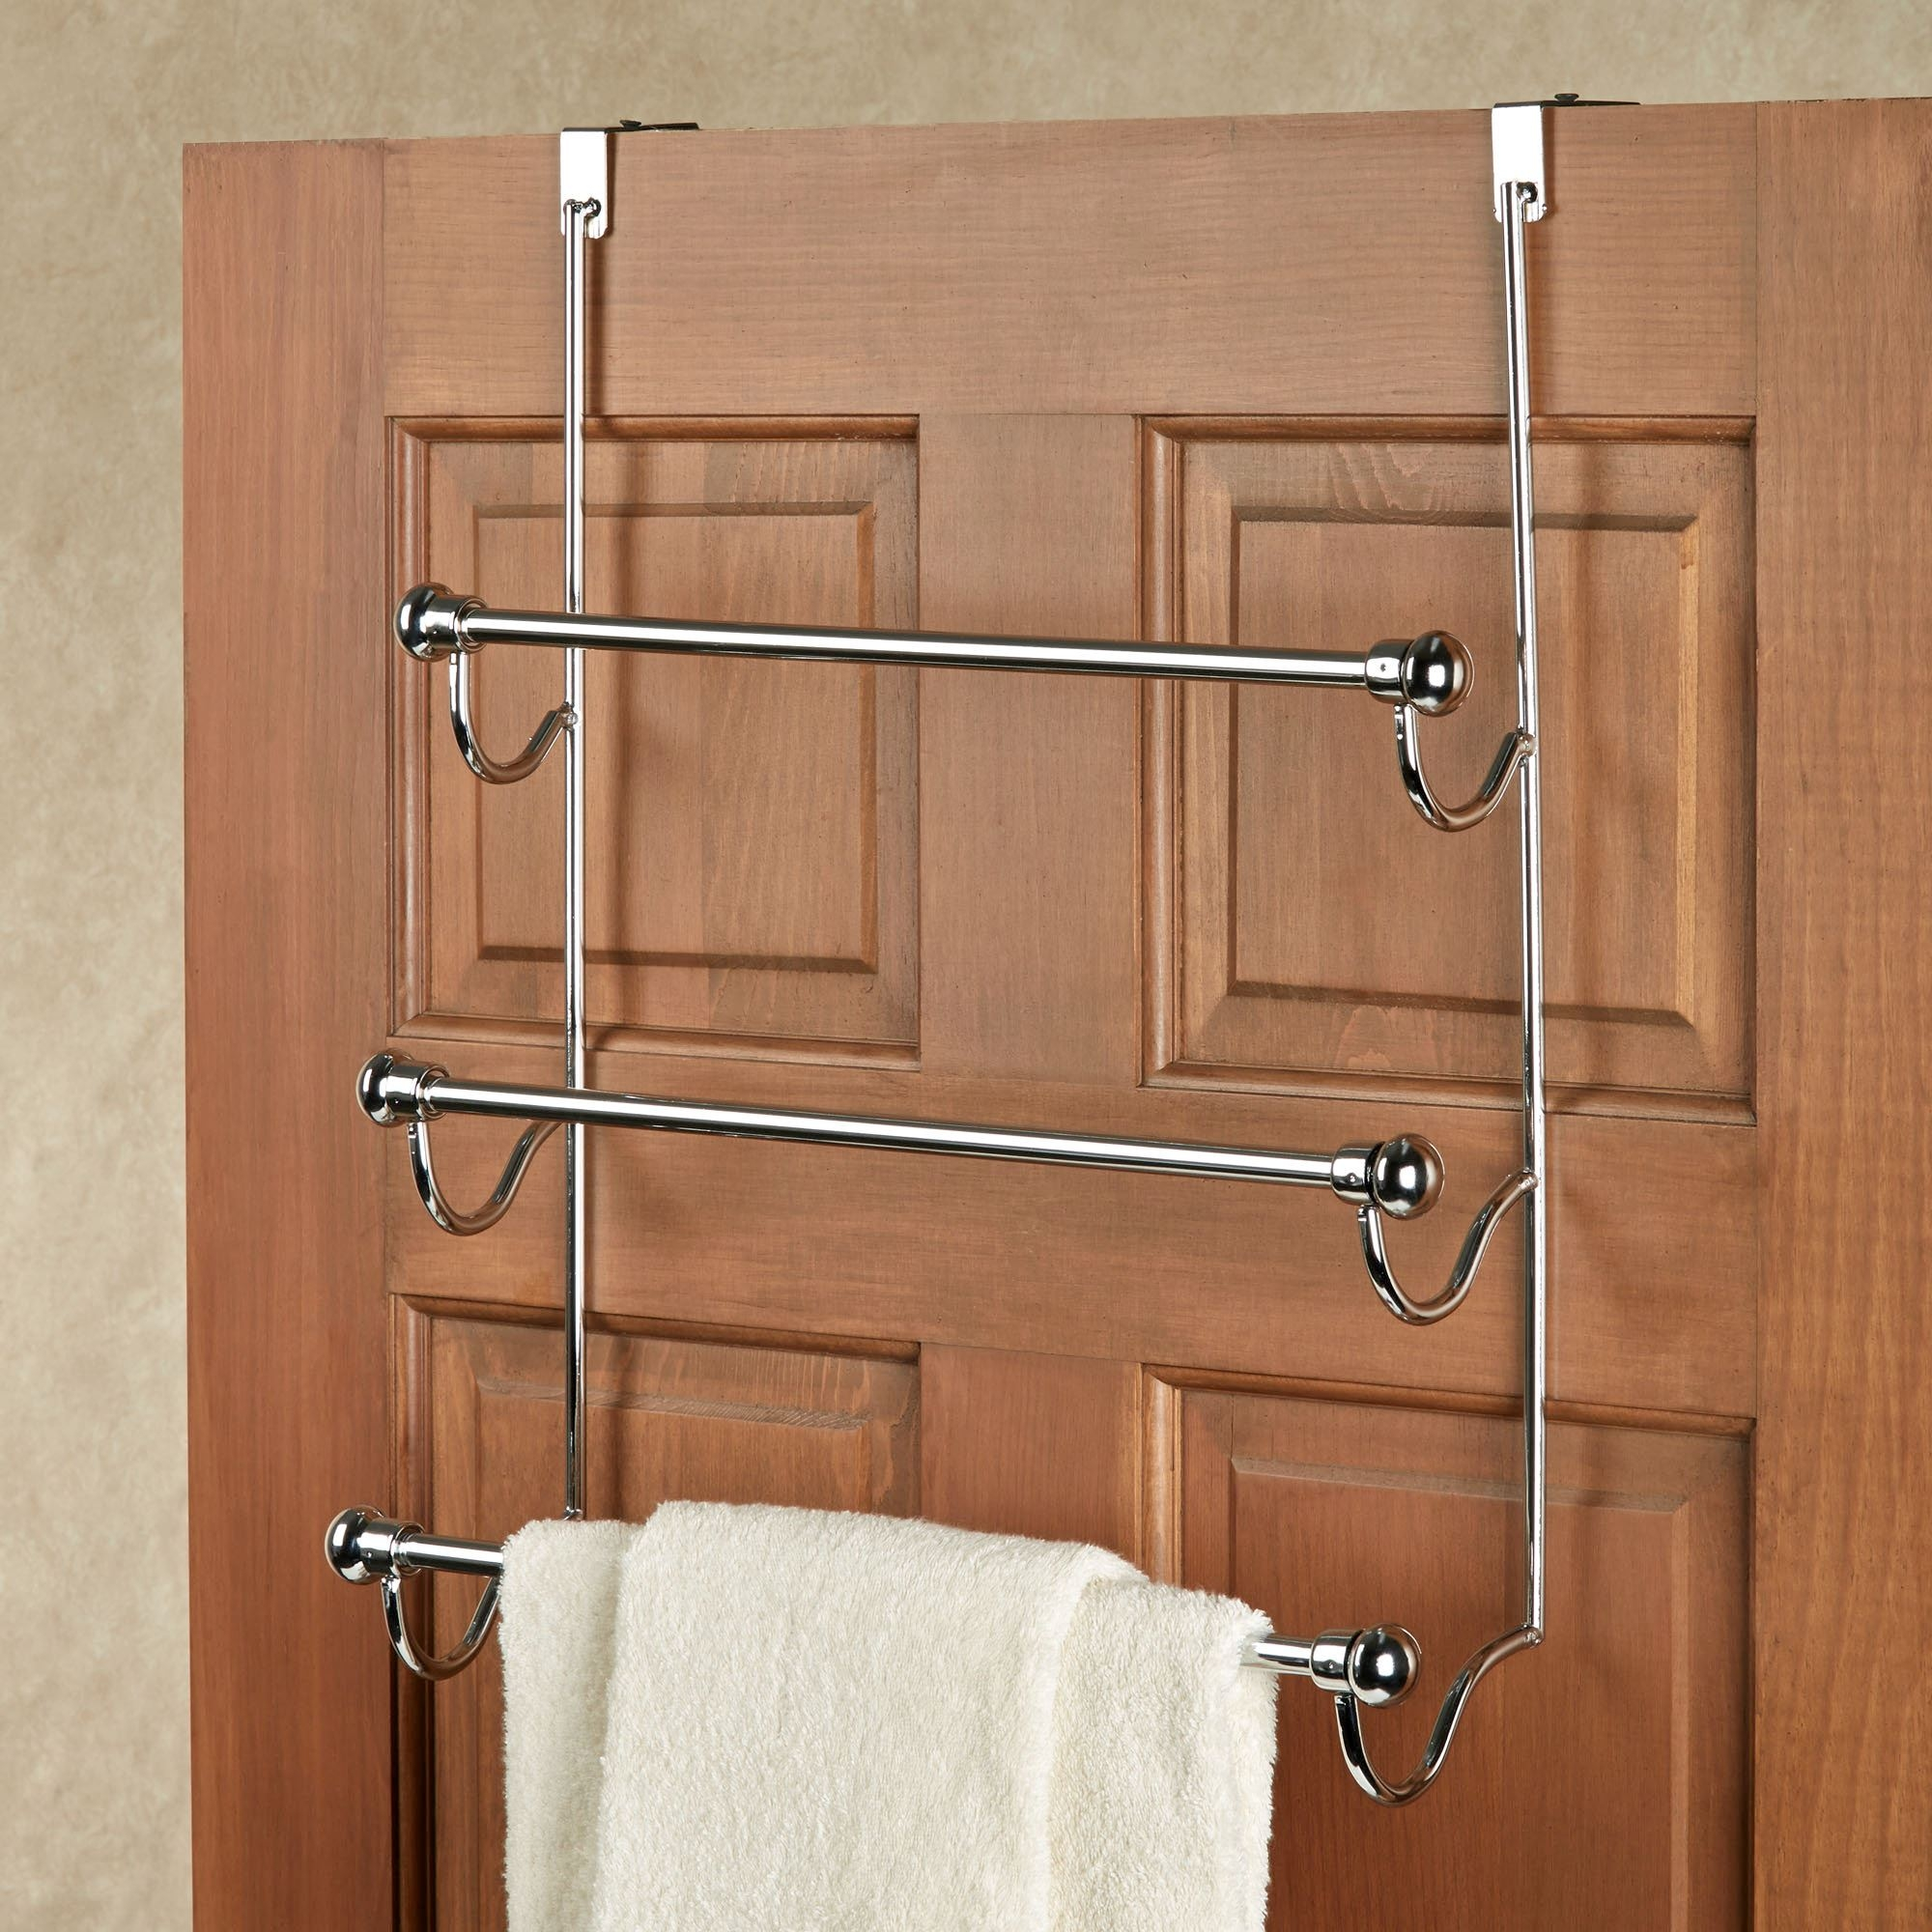 Permalink to Bathroom Towel Rack Over Door